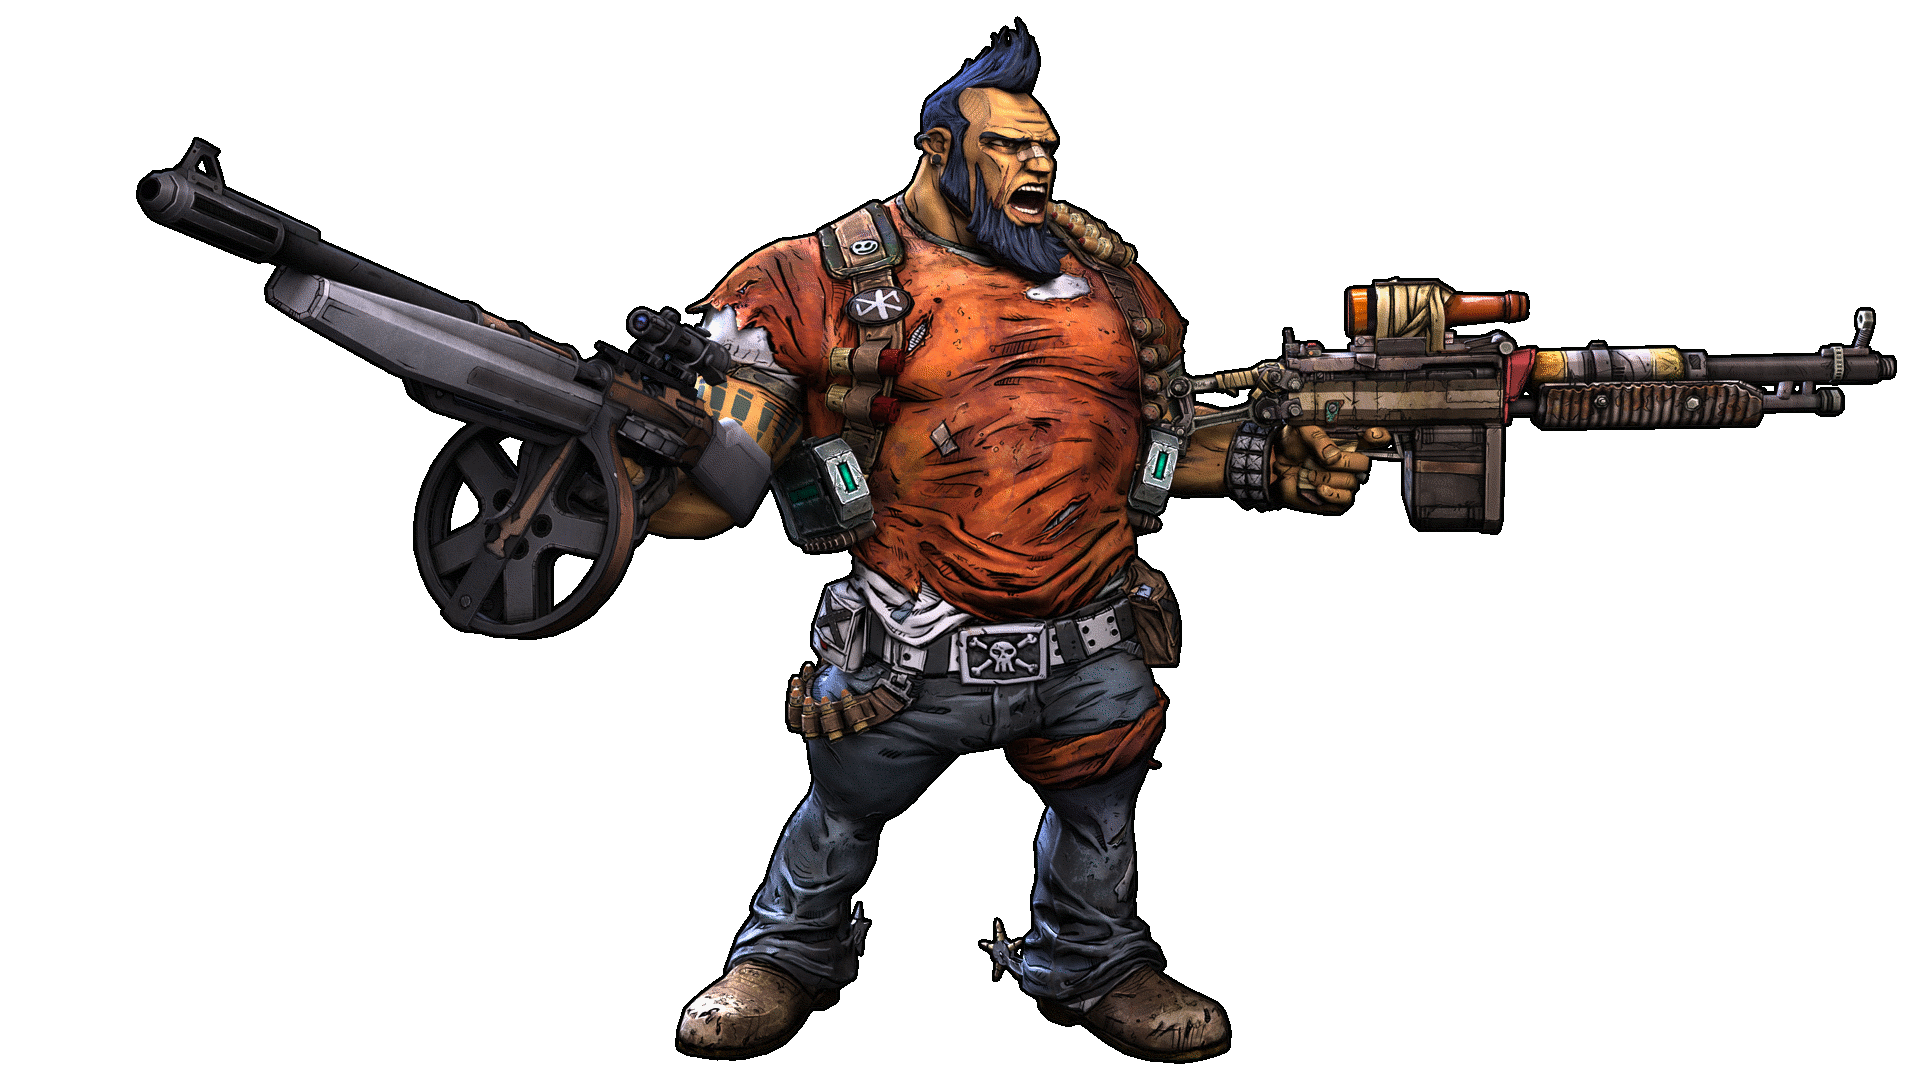 Borderlands2 skill calculator. Salvador. Level 5 Gunzerker